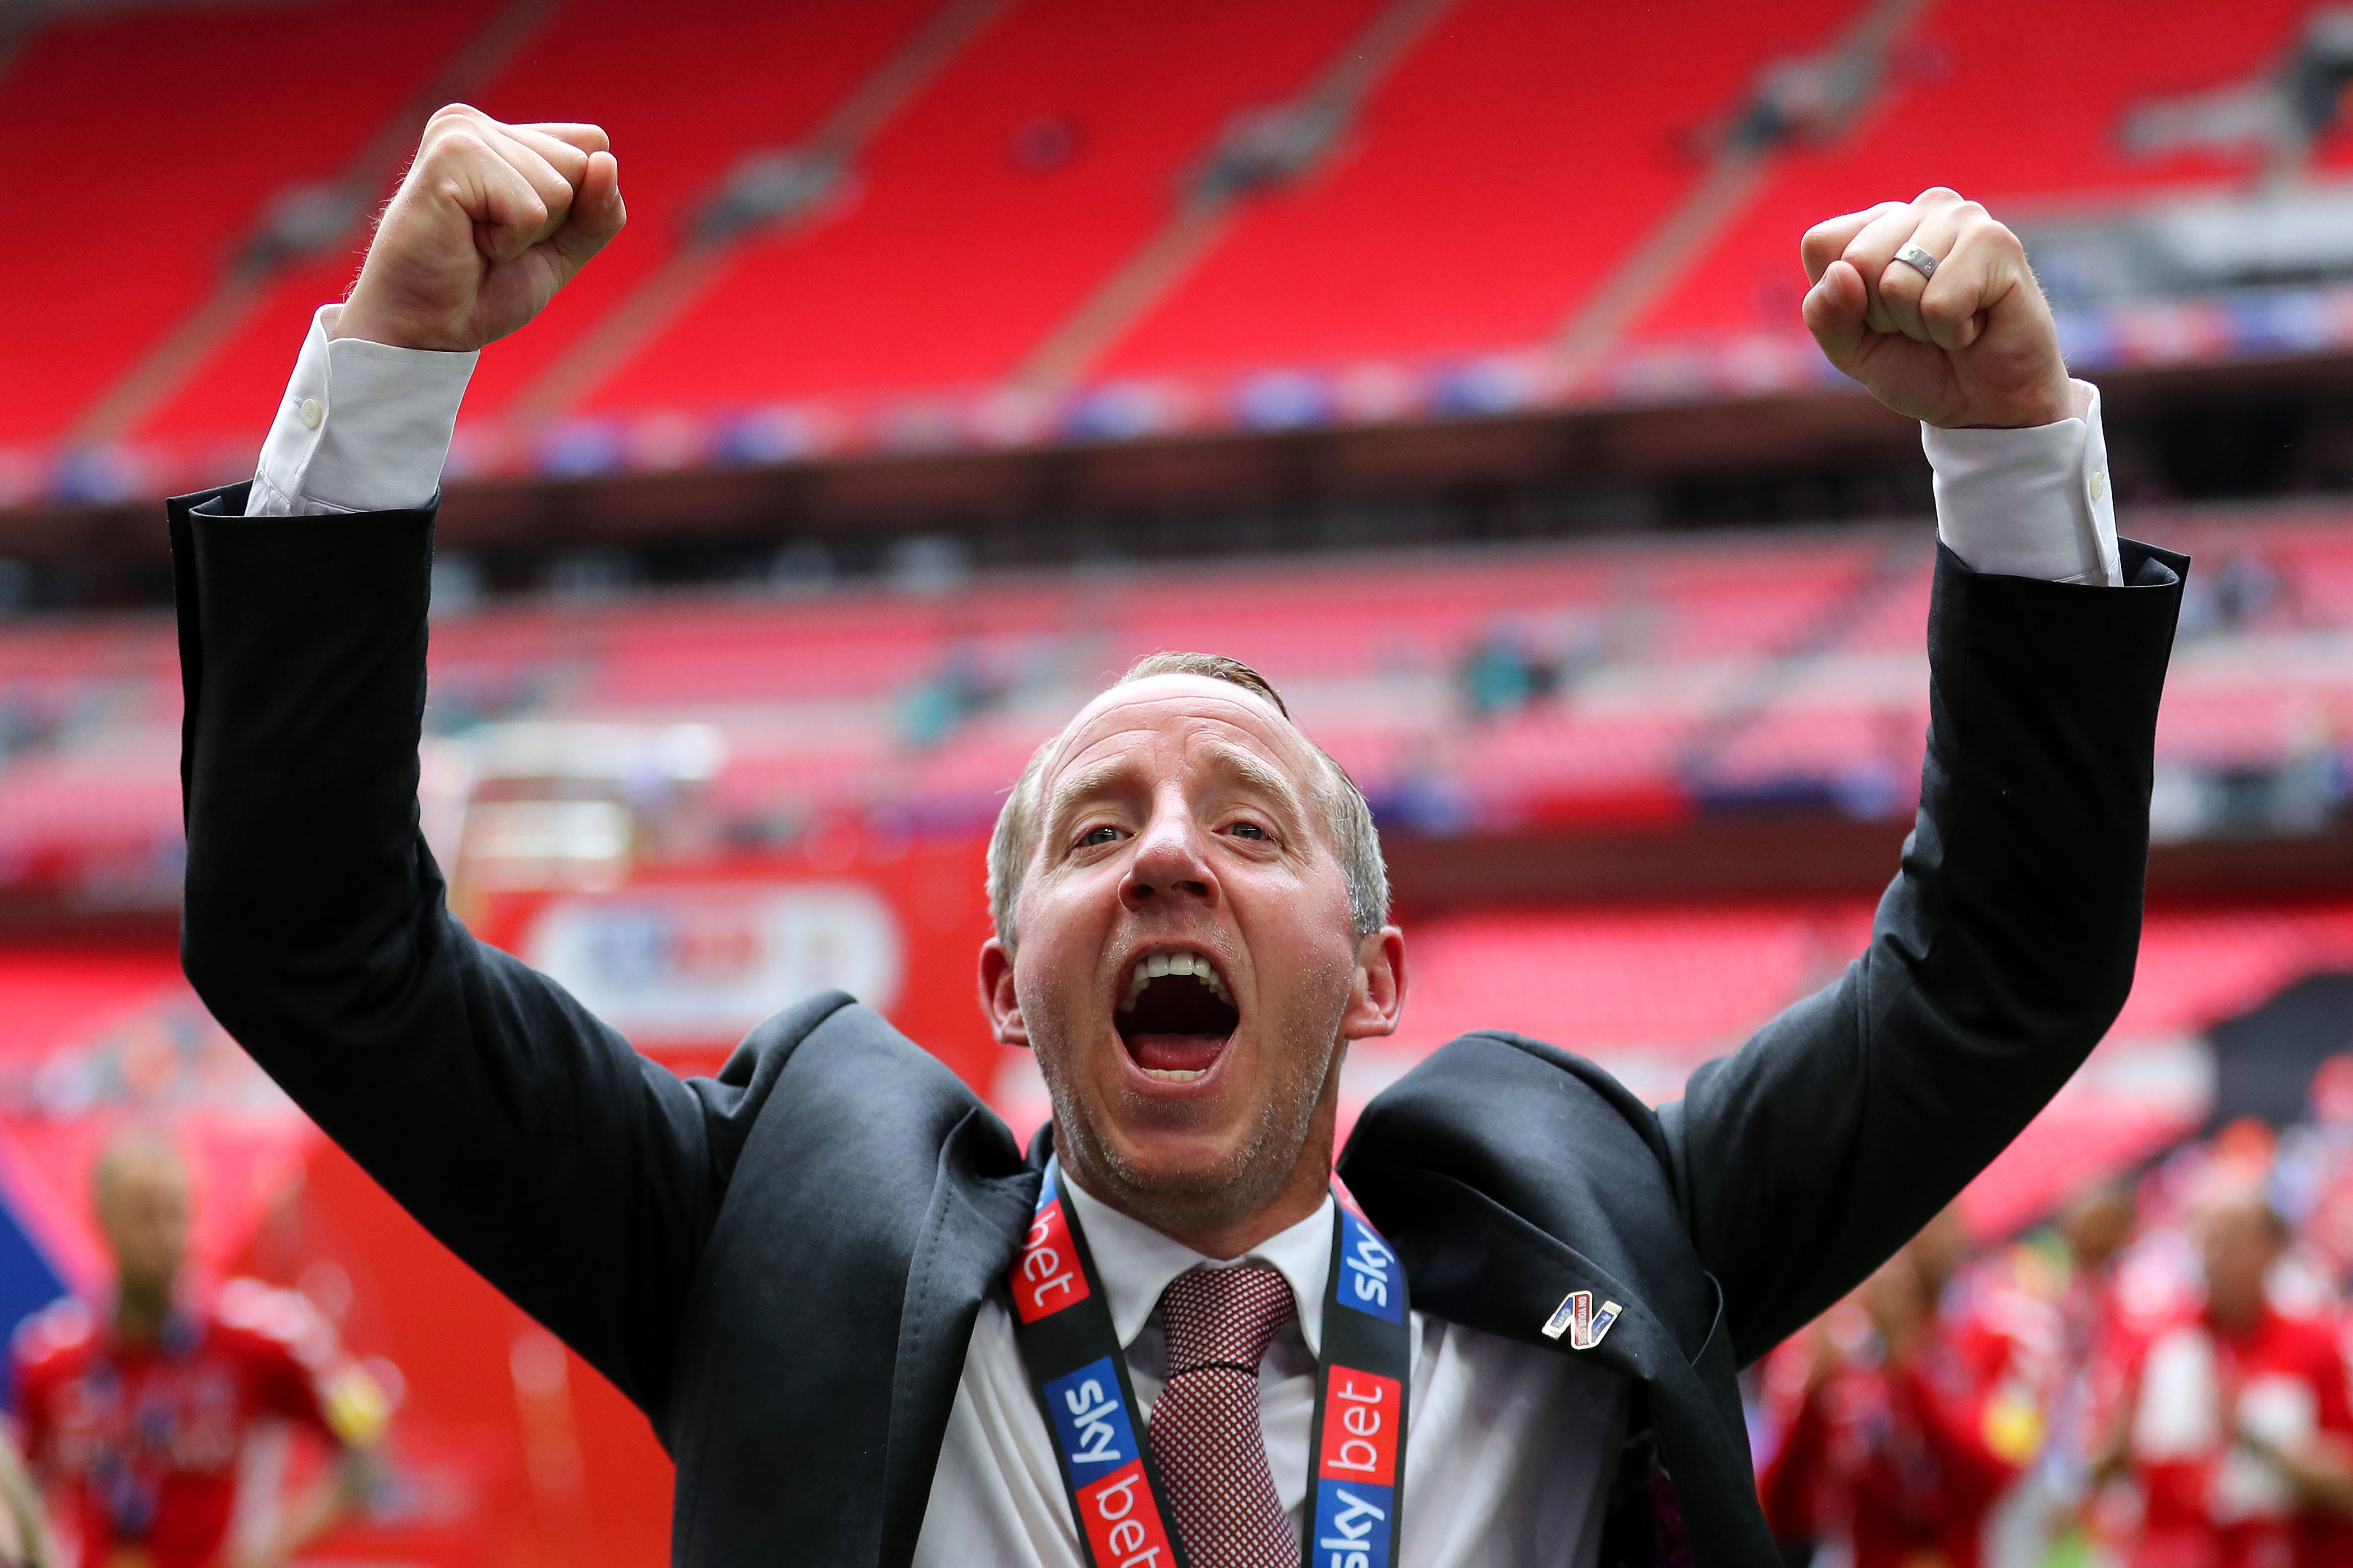 Lee Bowyer's Charlton are back in the Championship and face Blackburn in their opening tie